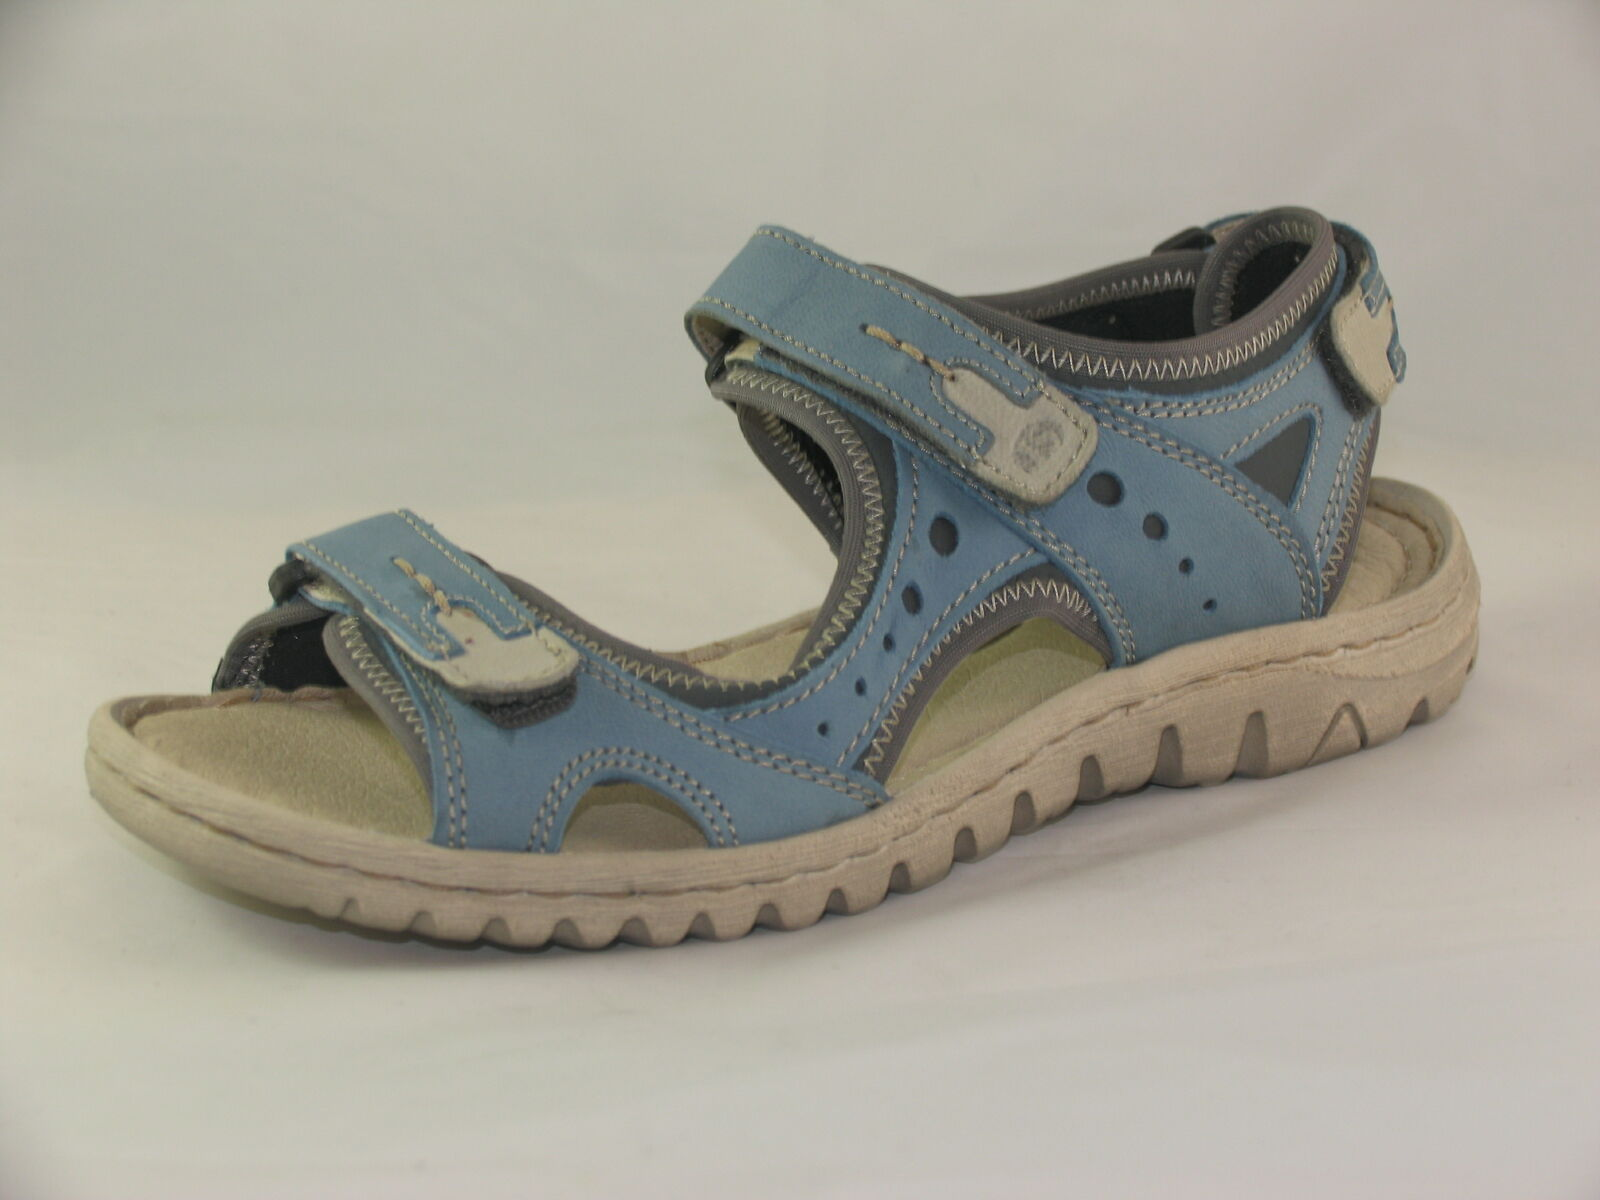 Womens Josef Seibel Lucia 17 Casual Walking Sandals